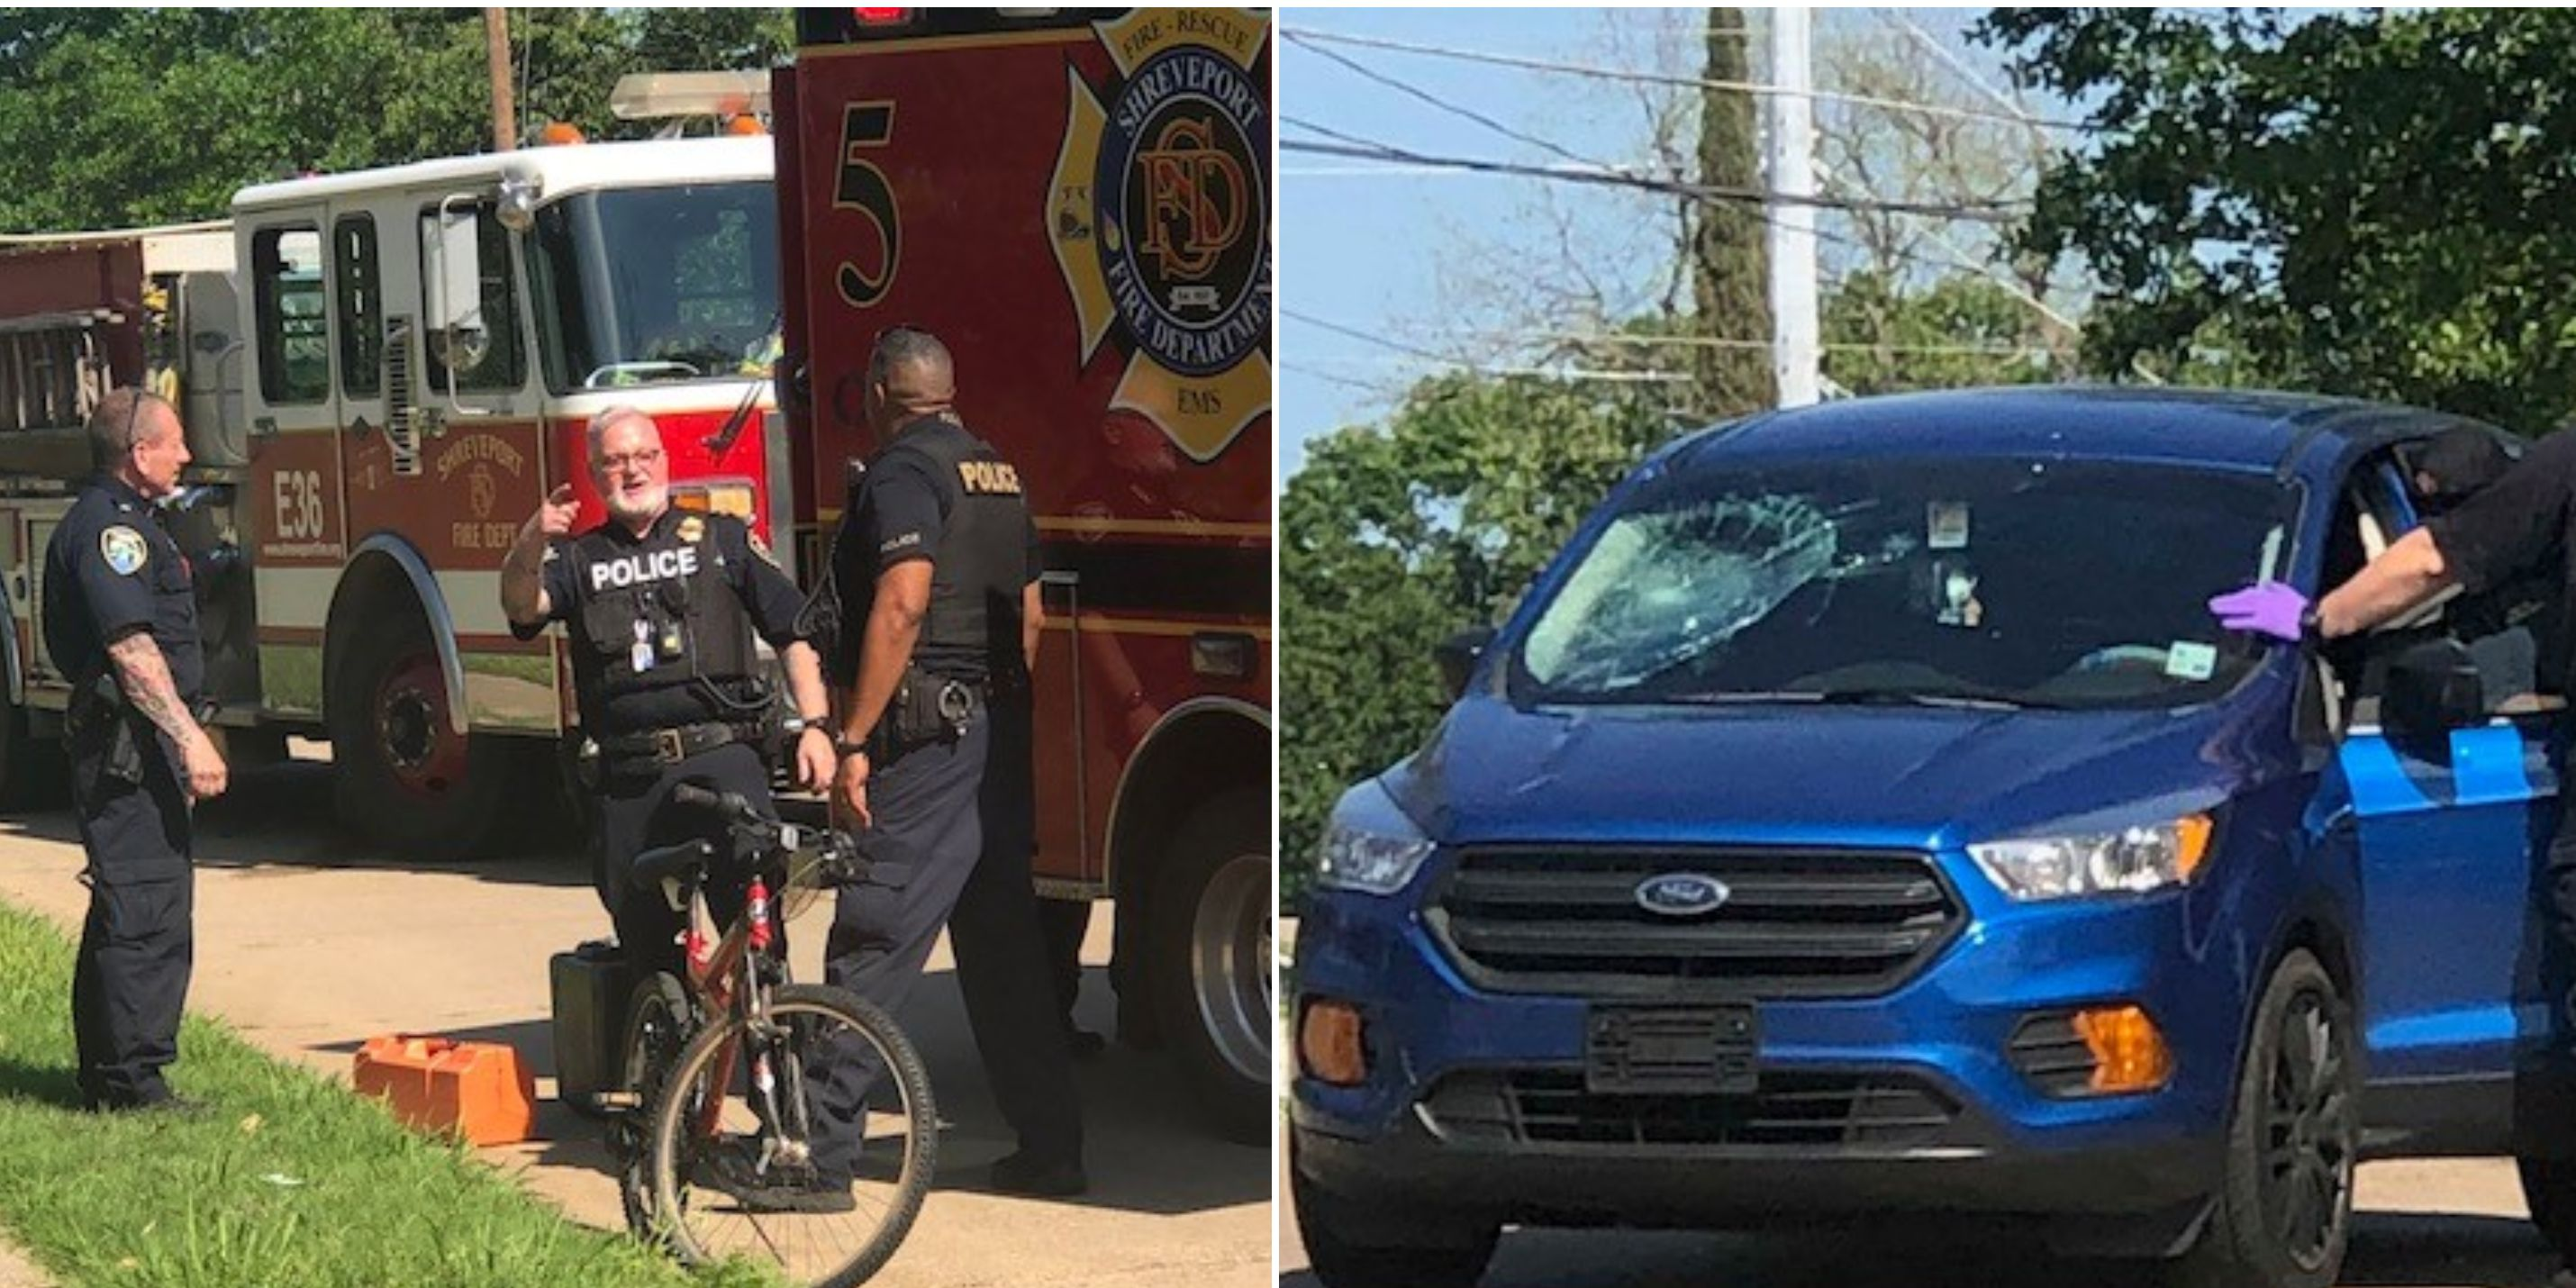 Bicyclist hurt in collision with SUV